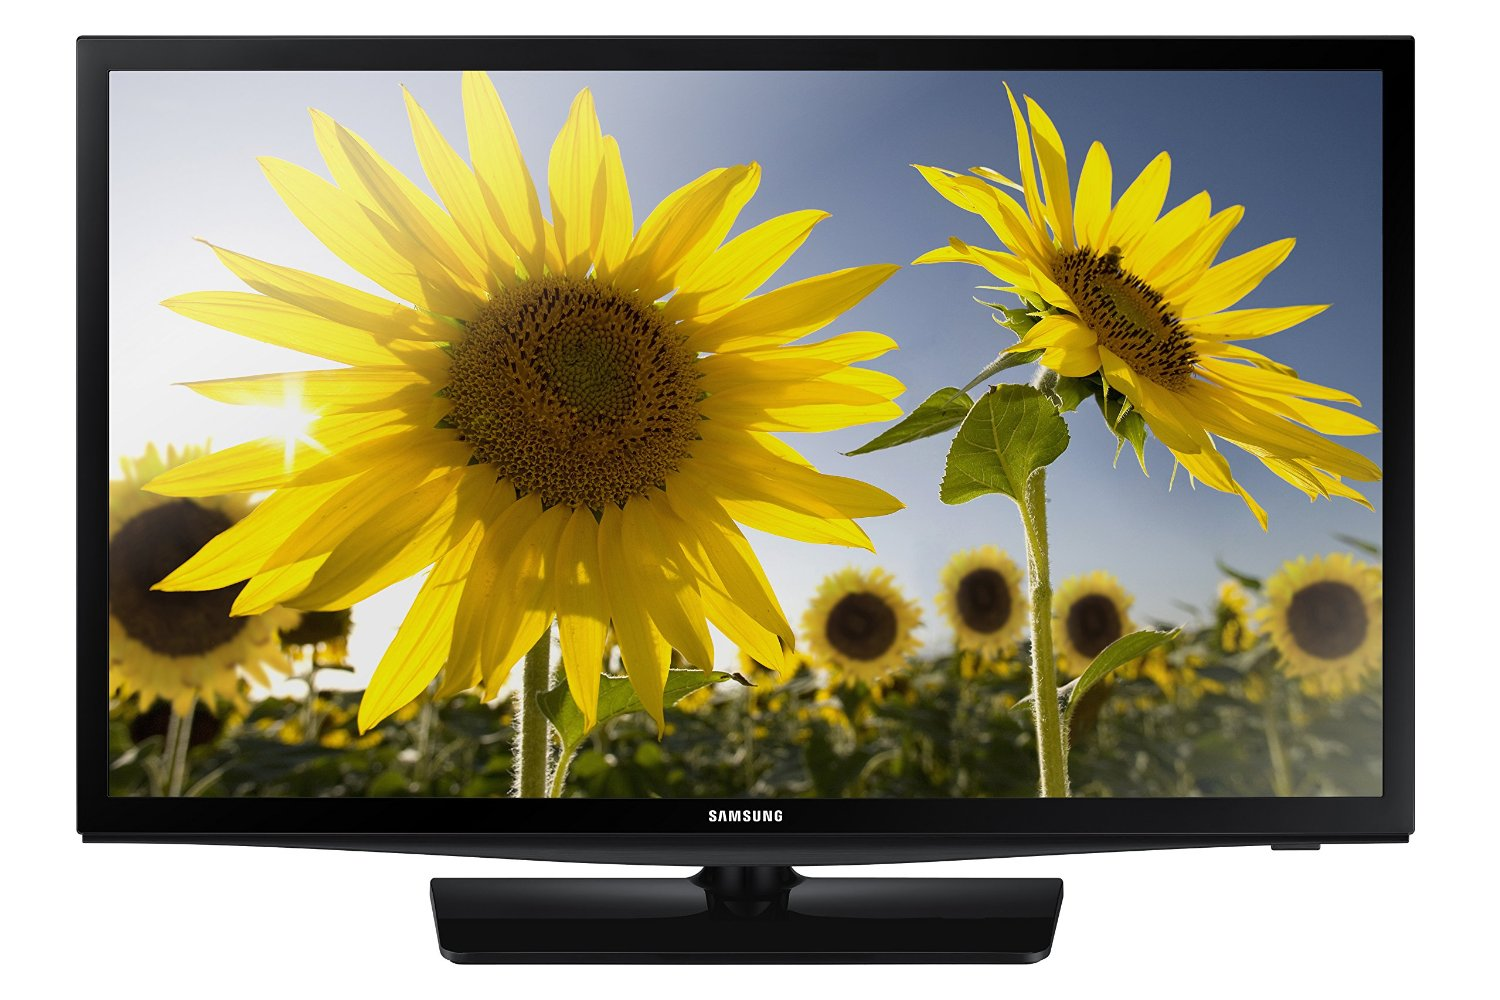 samsung electronics un28h4500 28 inch led tv